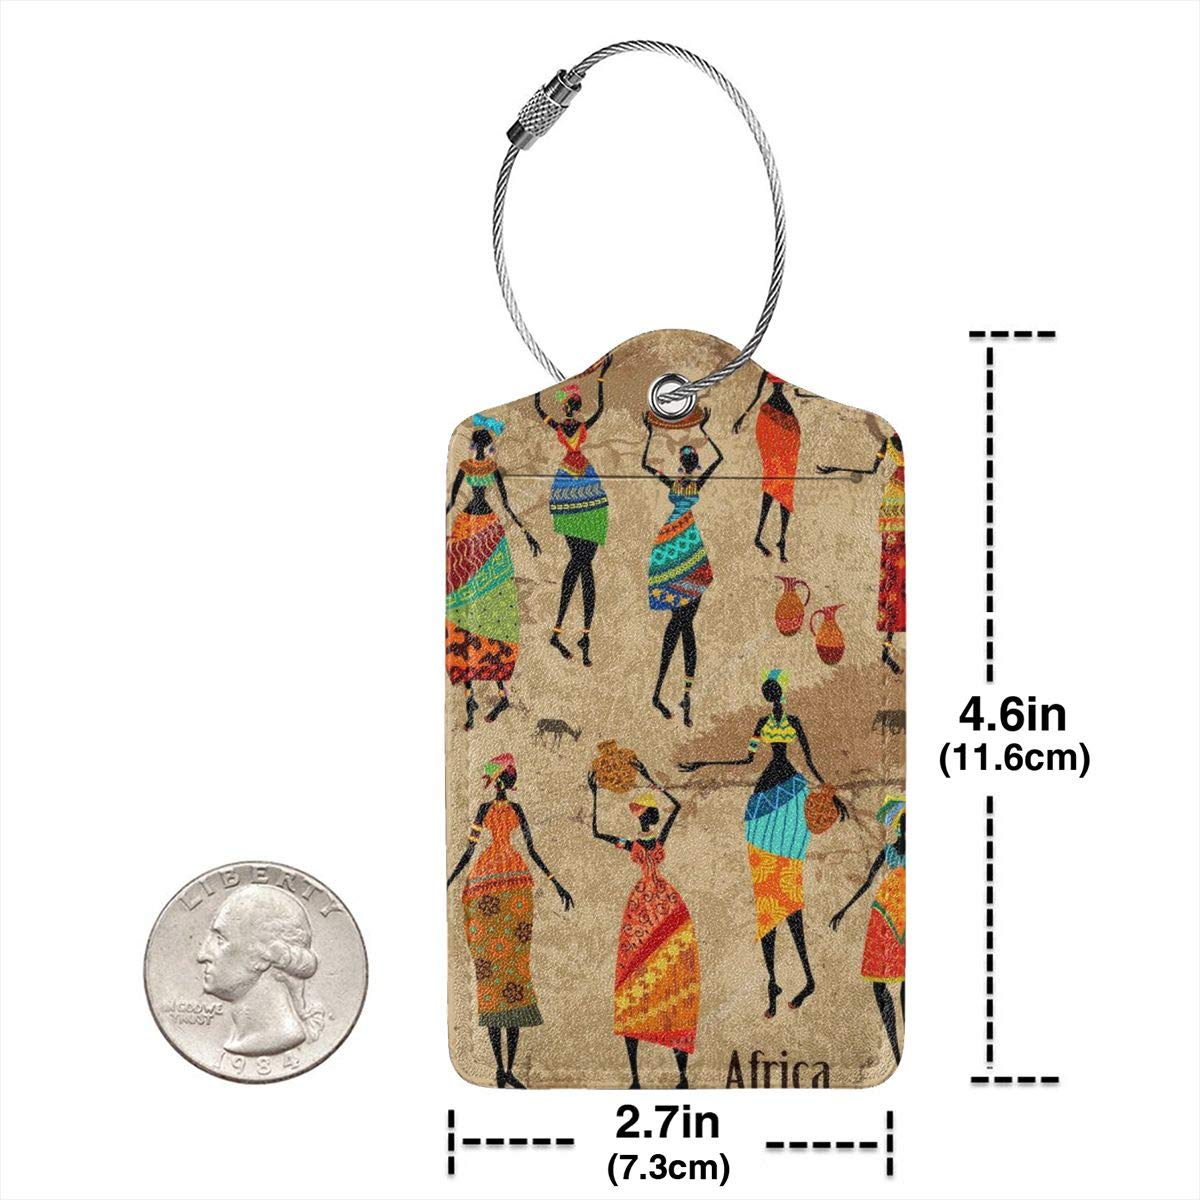 Leather Luggage Tag Vintage African Women Dance Ethnic Luggage Tags For Suitcase Travel Lover Gifts For Men Women 4 PCS